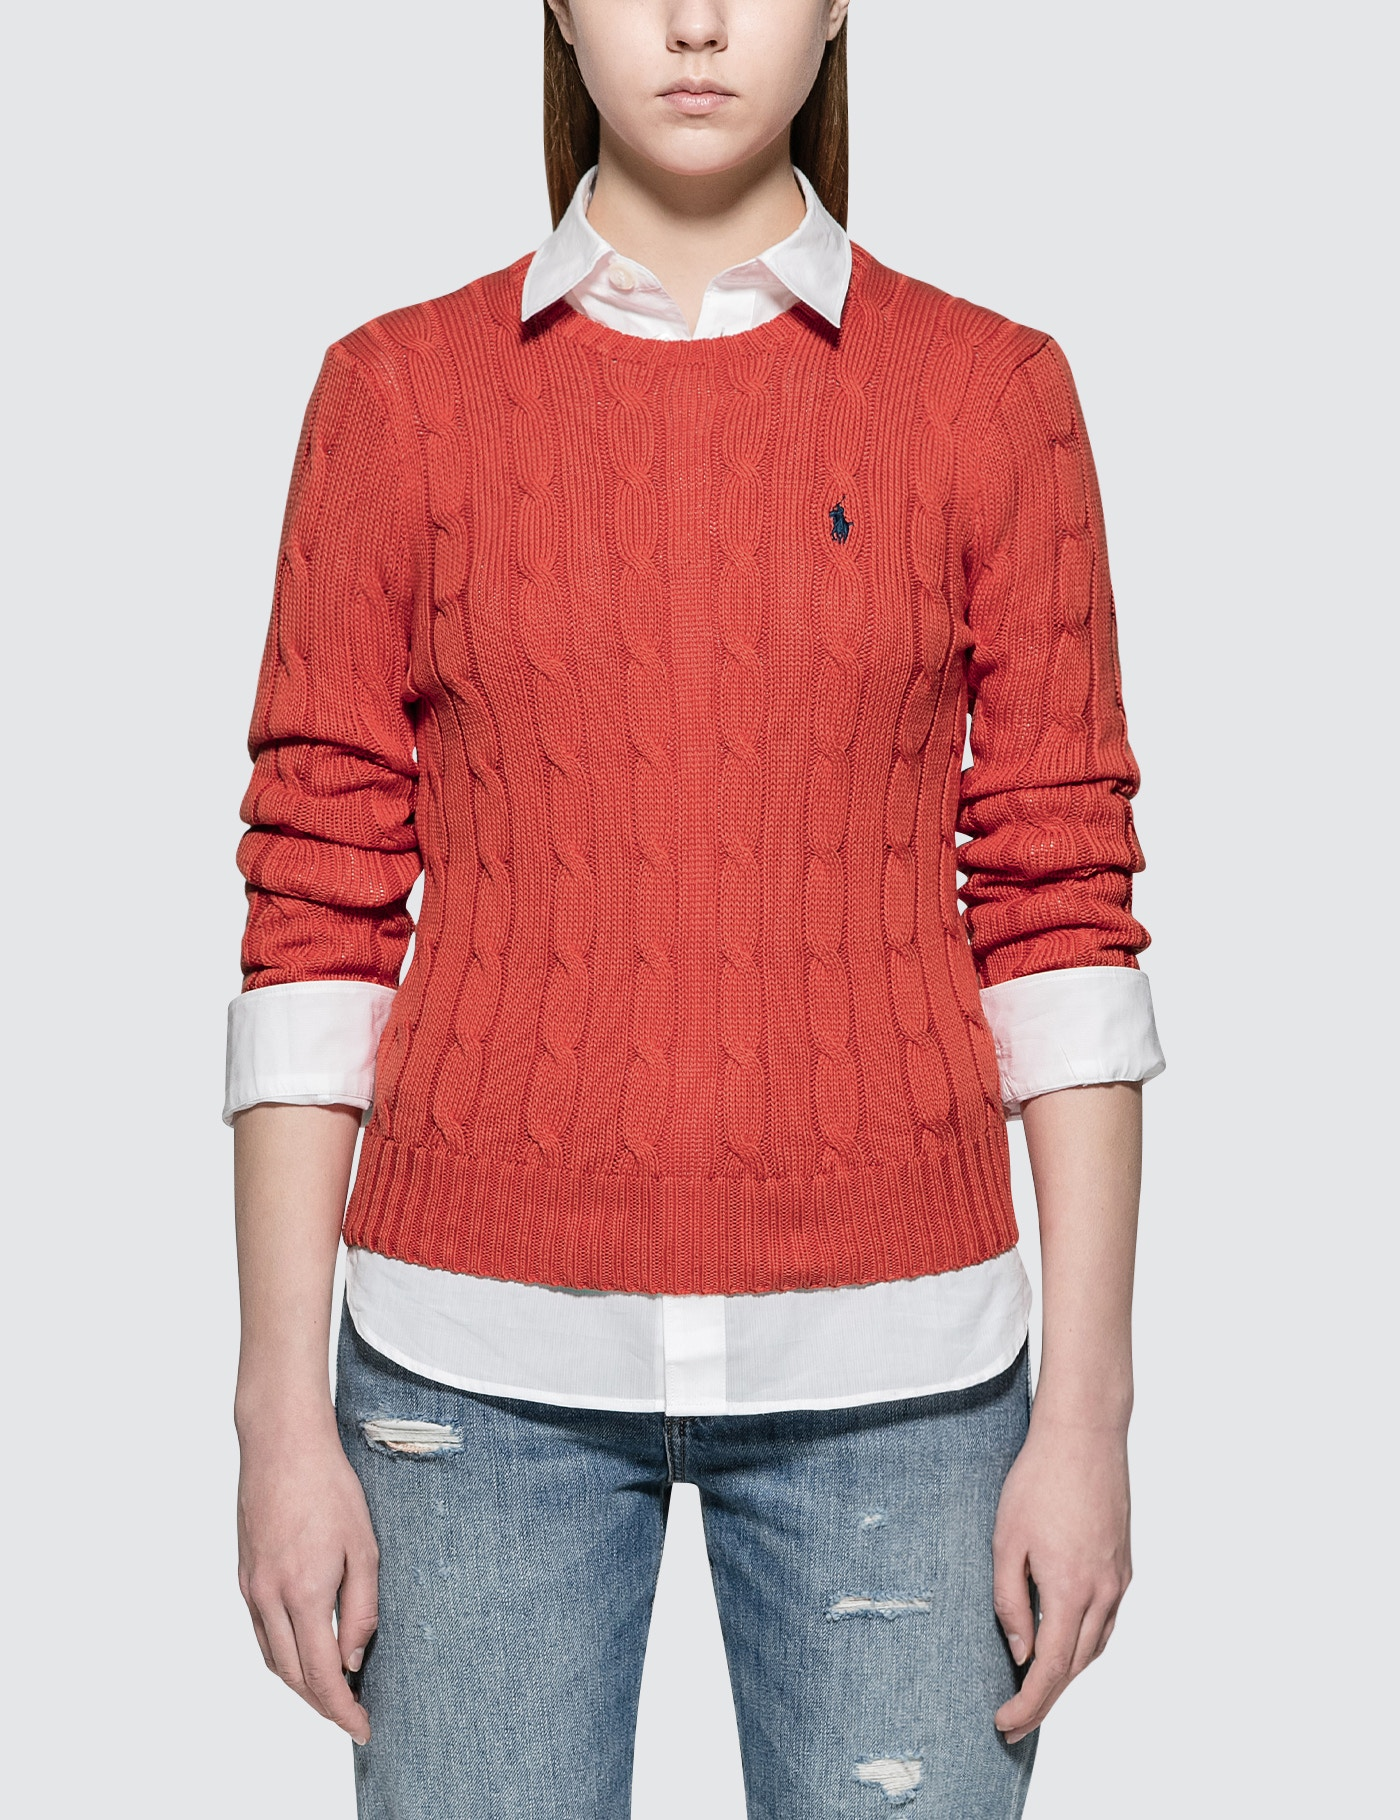 d4df195e99eb Buy Original Polo Ralph Lauren Julianna Sweater at Indonesia